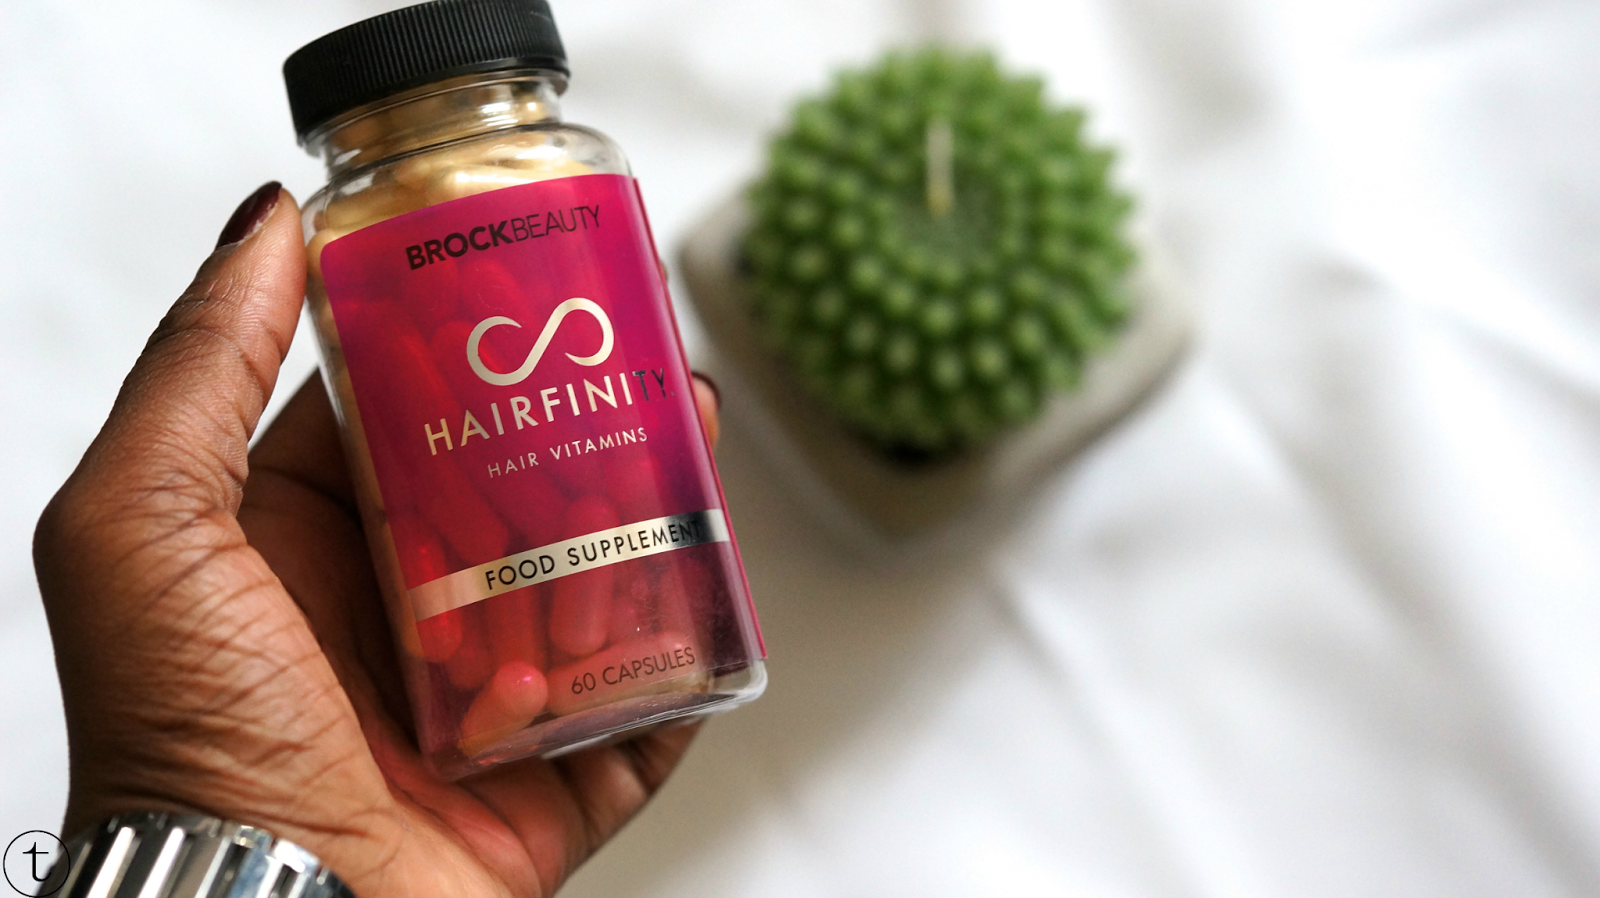 hairfinity vitamins product review by trudy danso